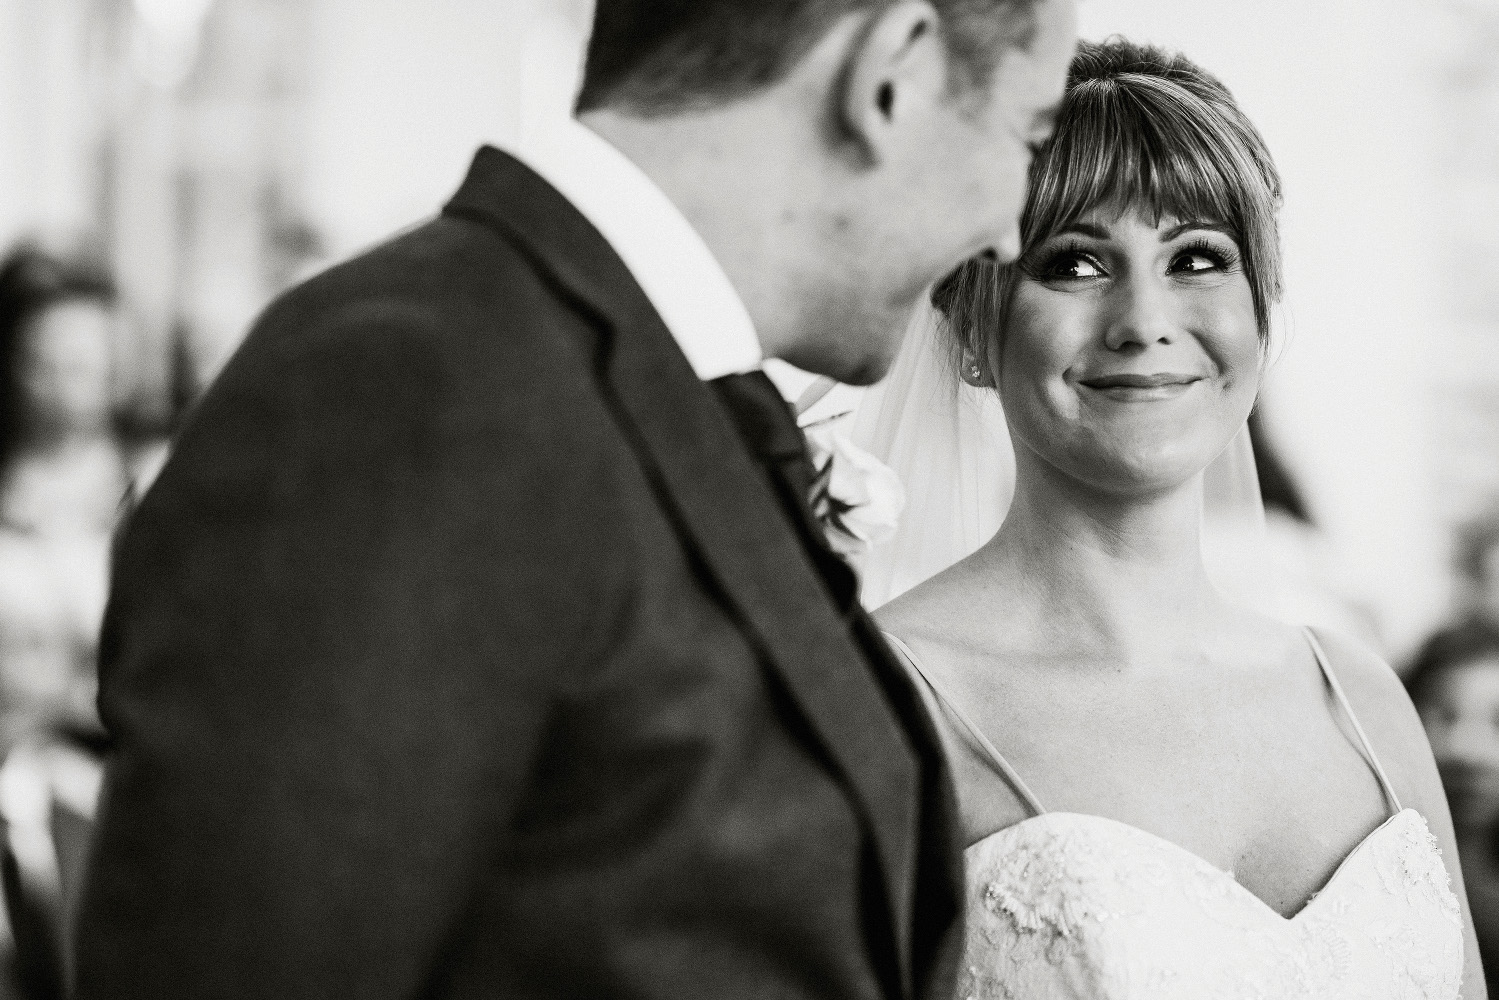 bride glancing at groom and smiling